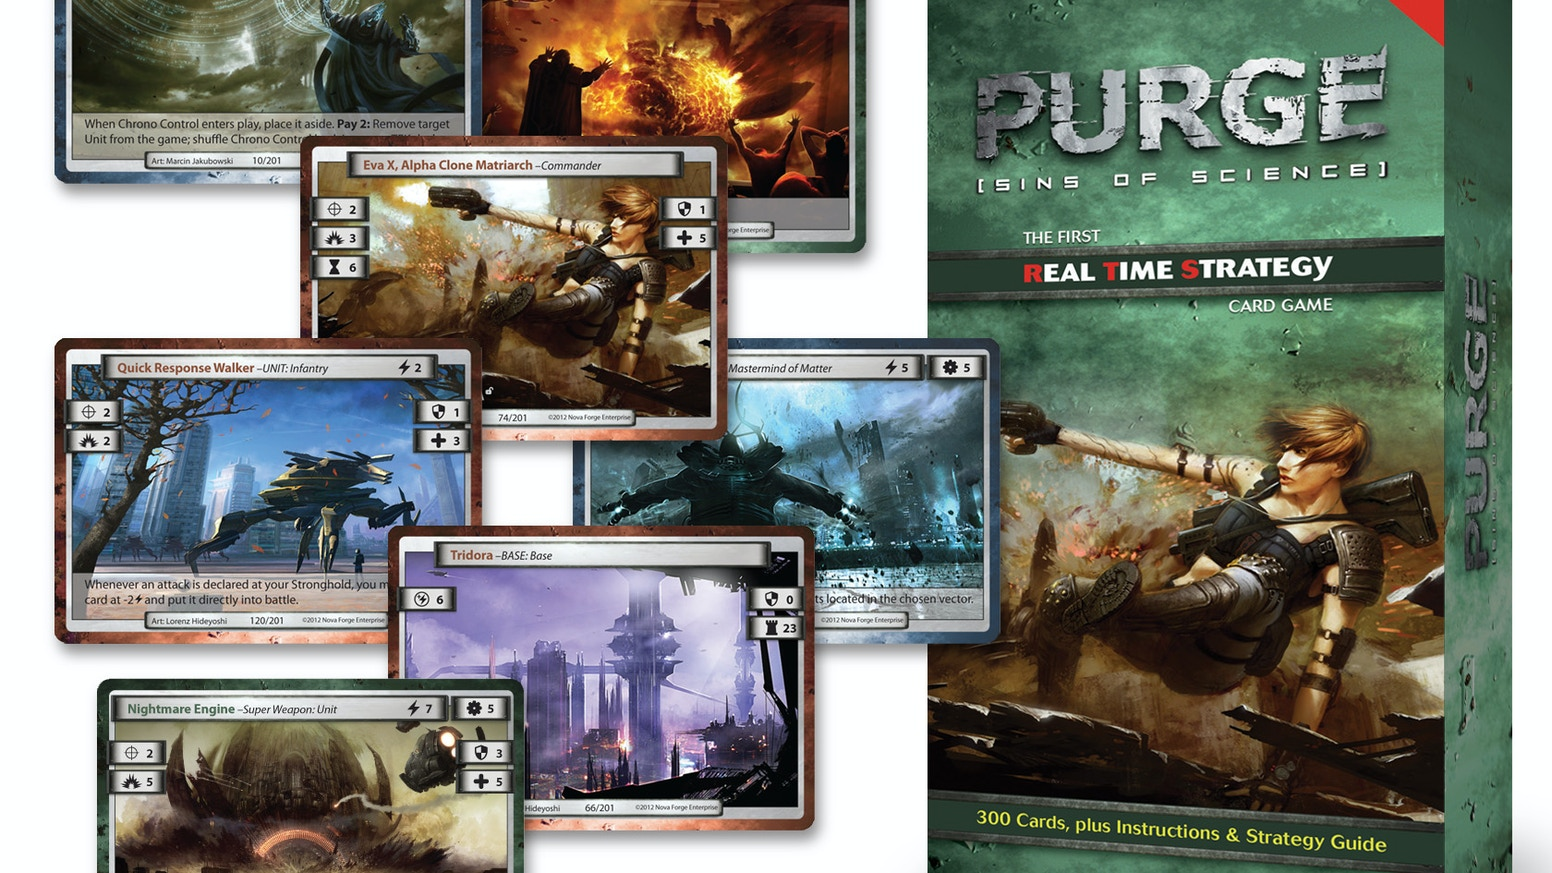 PURGE: Sins of Science- The 1st Real Time Strategy Card Game